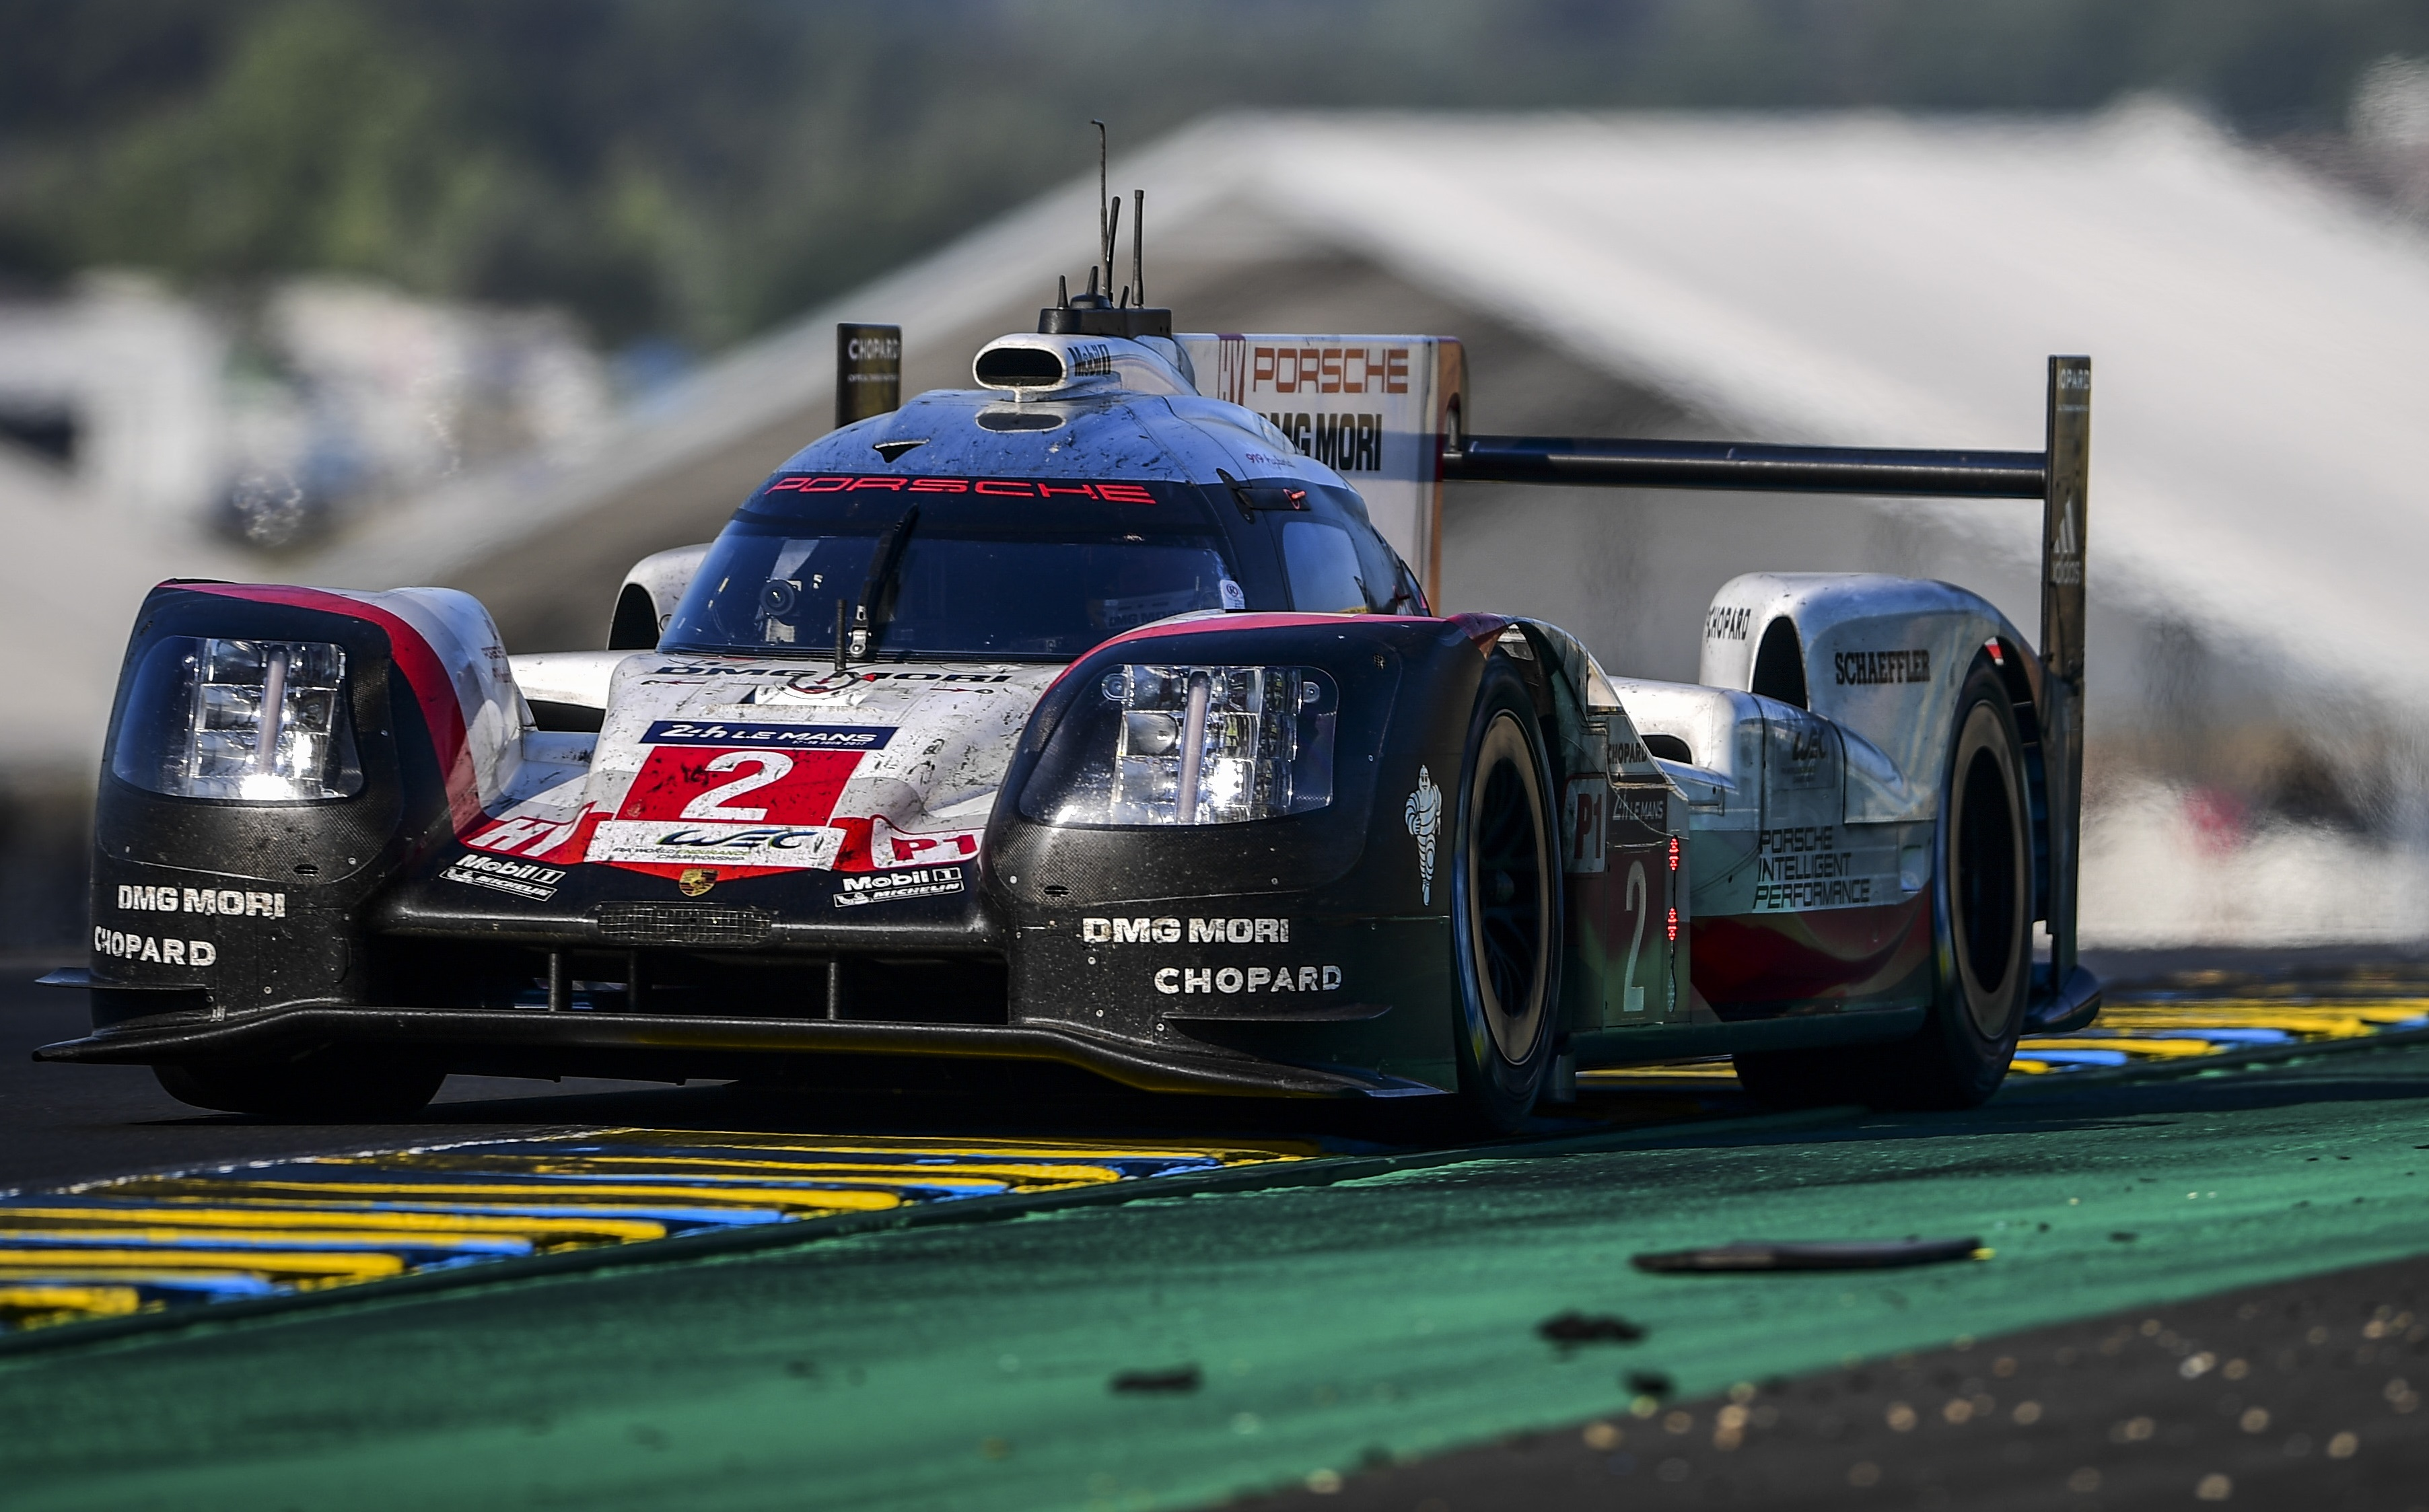 gr ce une magnifique remontada porsche triomphe encore au mans 24h du mans endurance. Black Bedroom Furniture Sets. Home Design Ideas